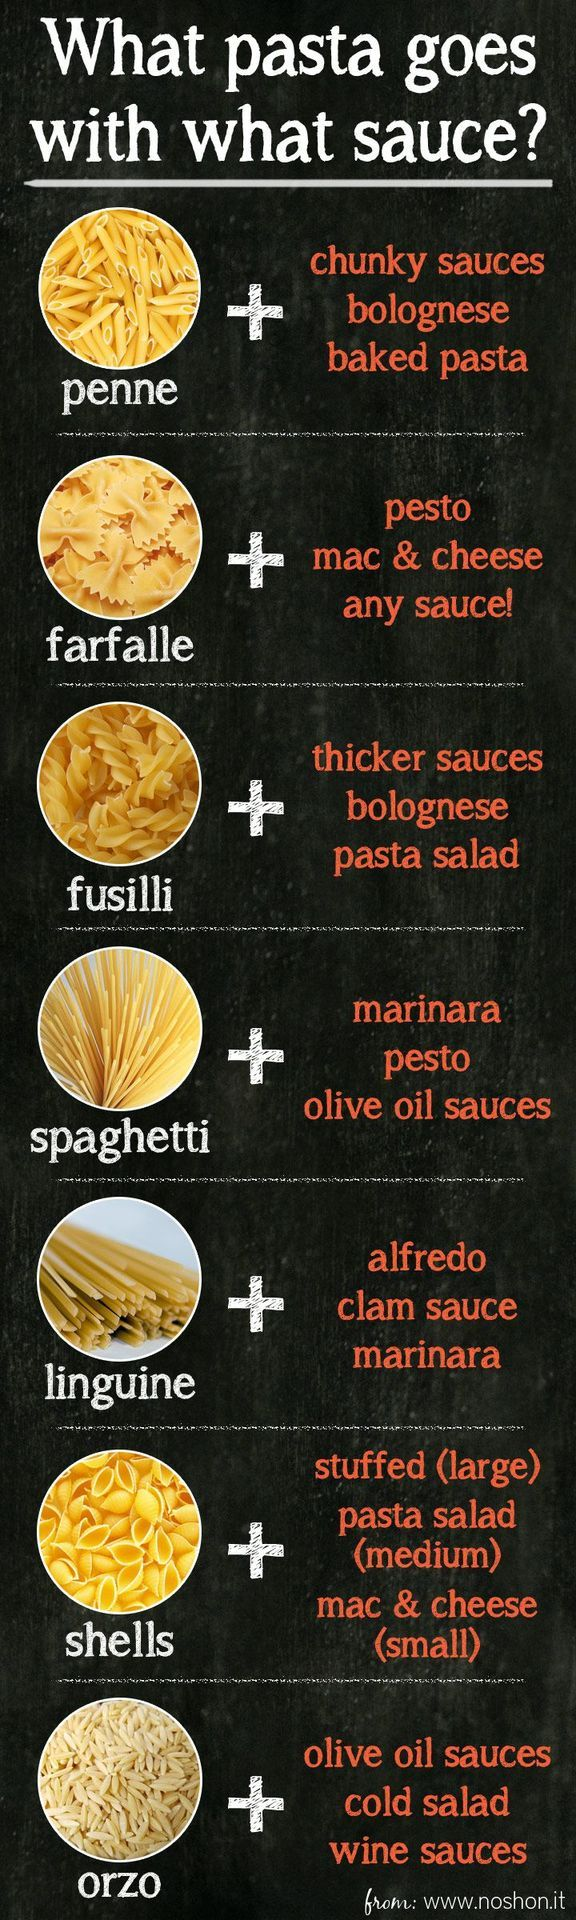 Which pasta goes best with what types of sauces?